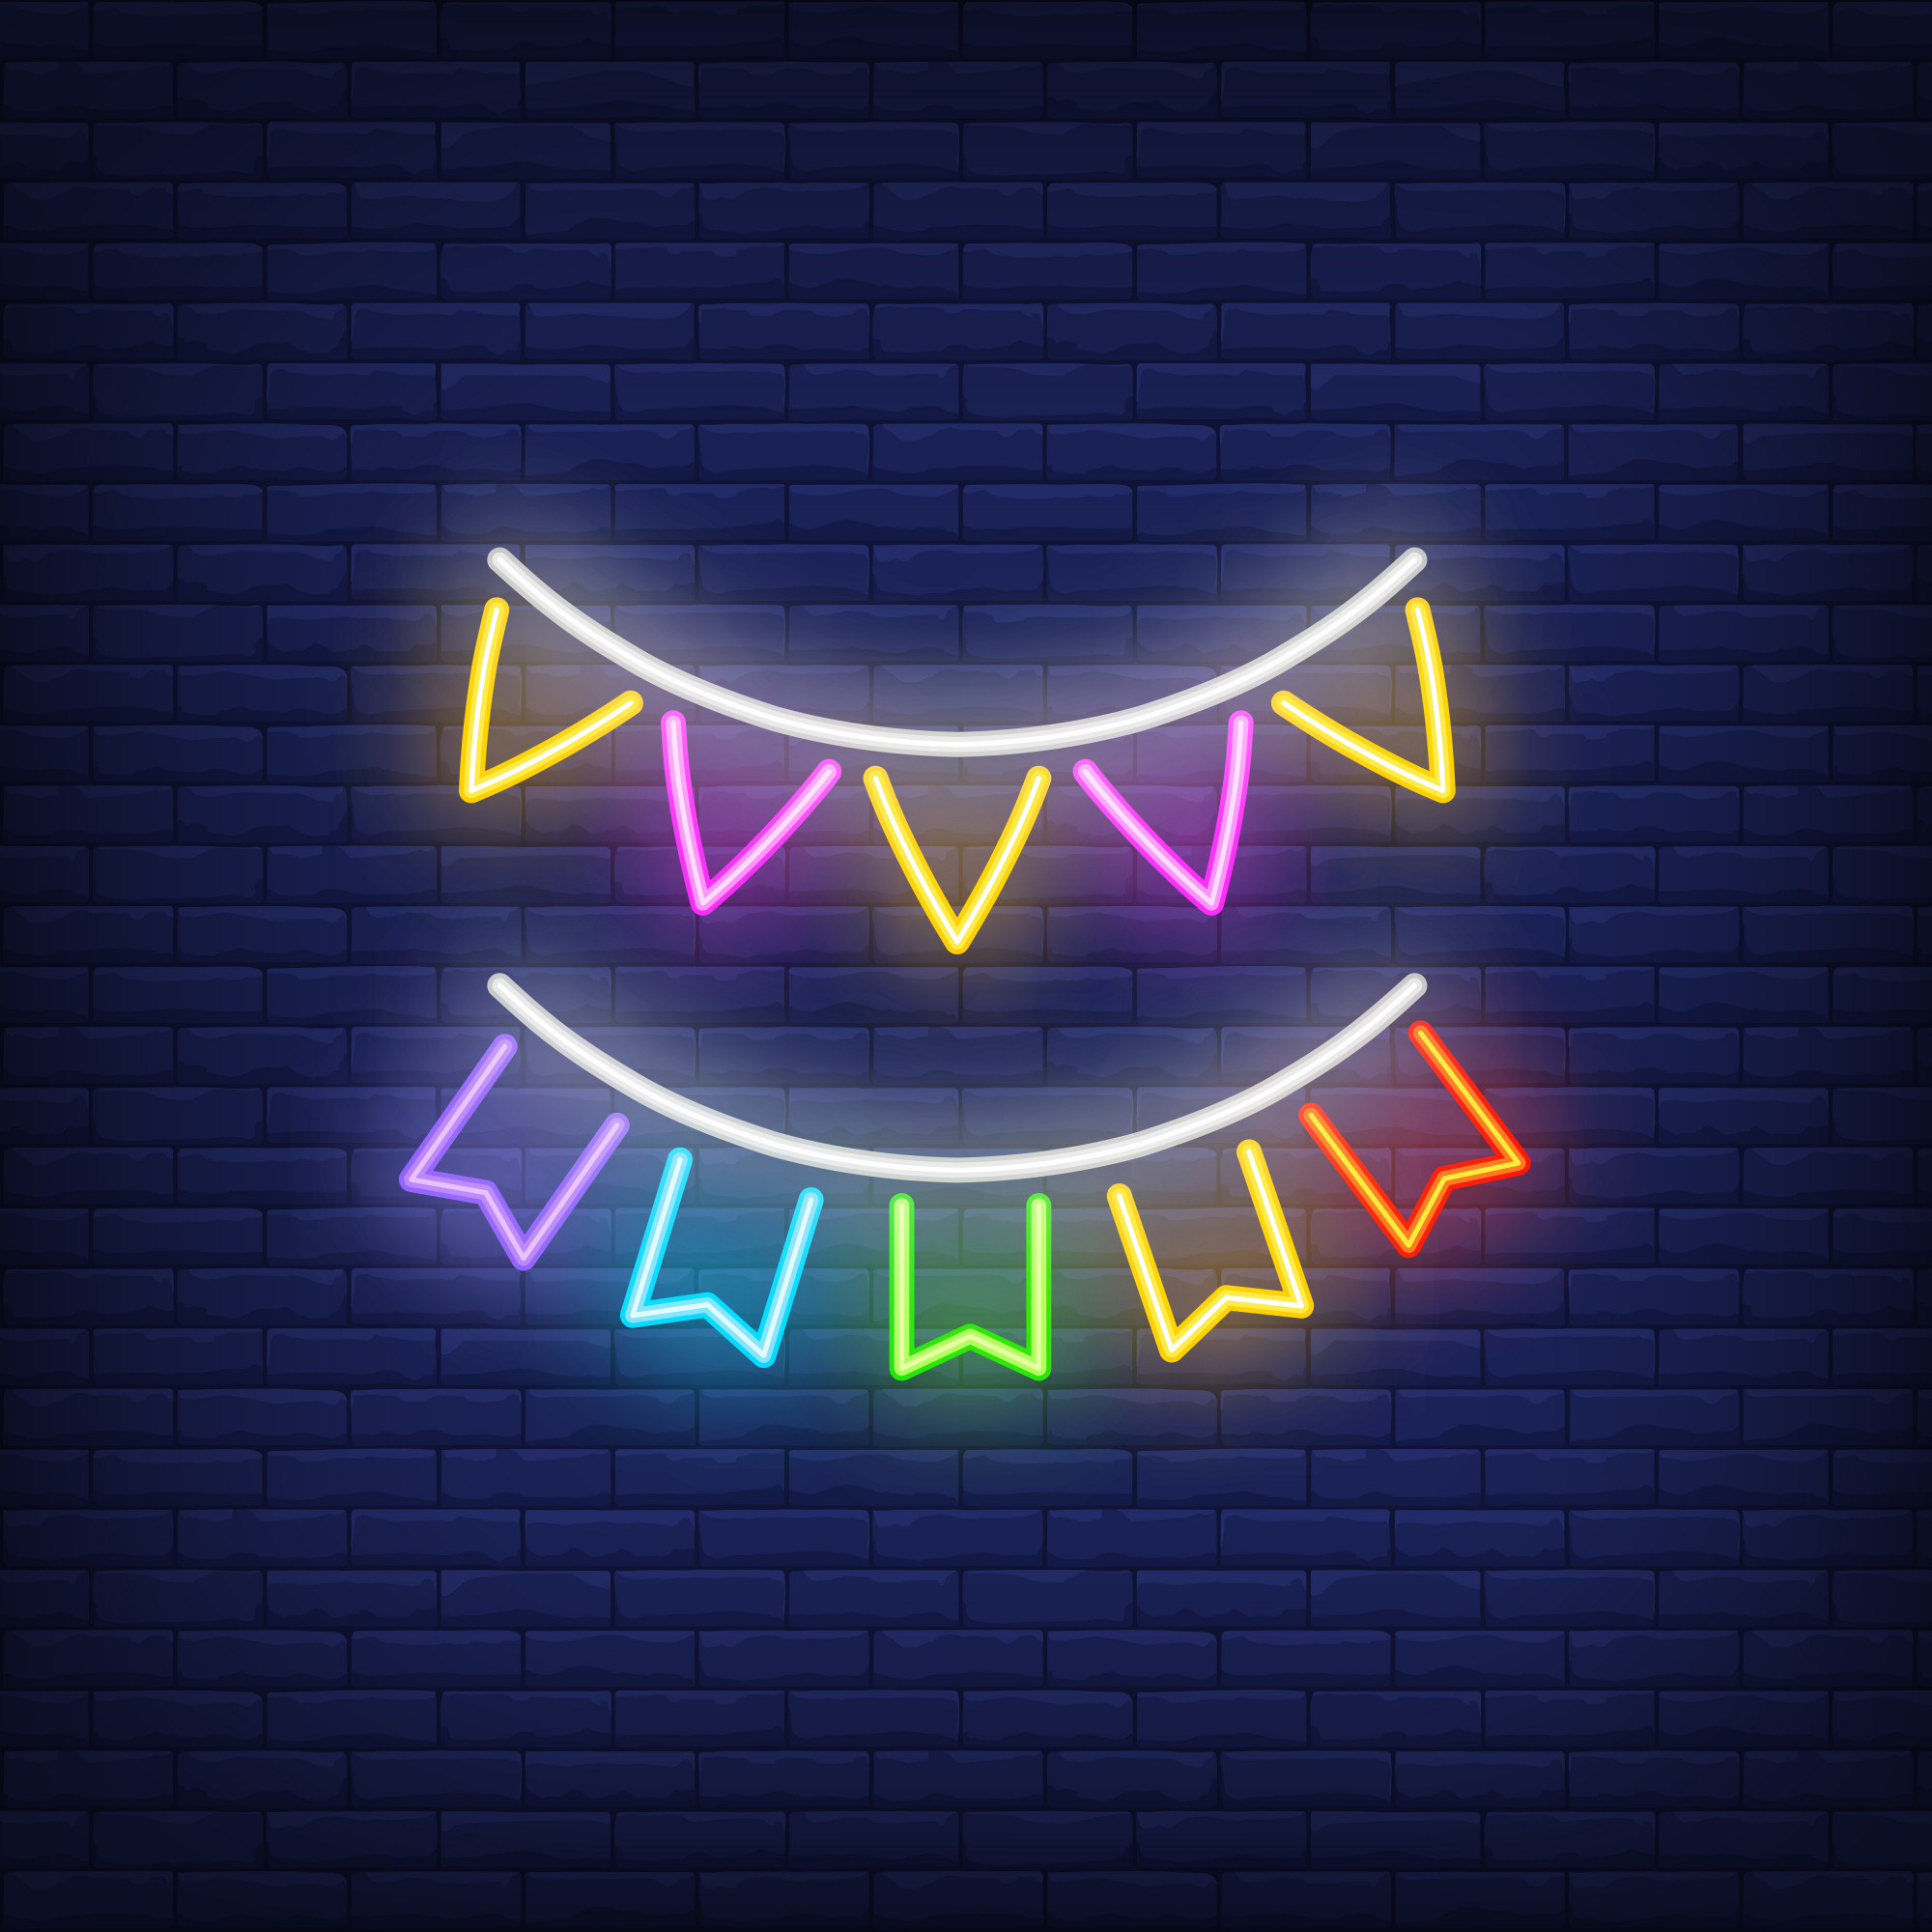 Two rows of multicolored buntings on brick background. Neon style sign.